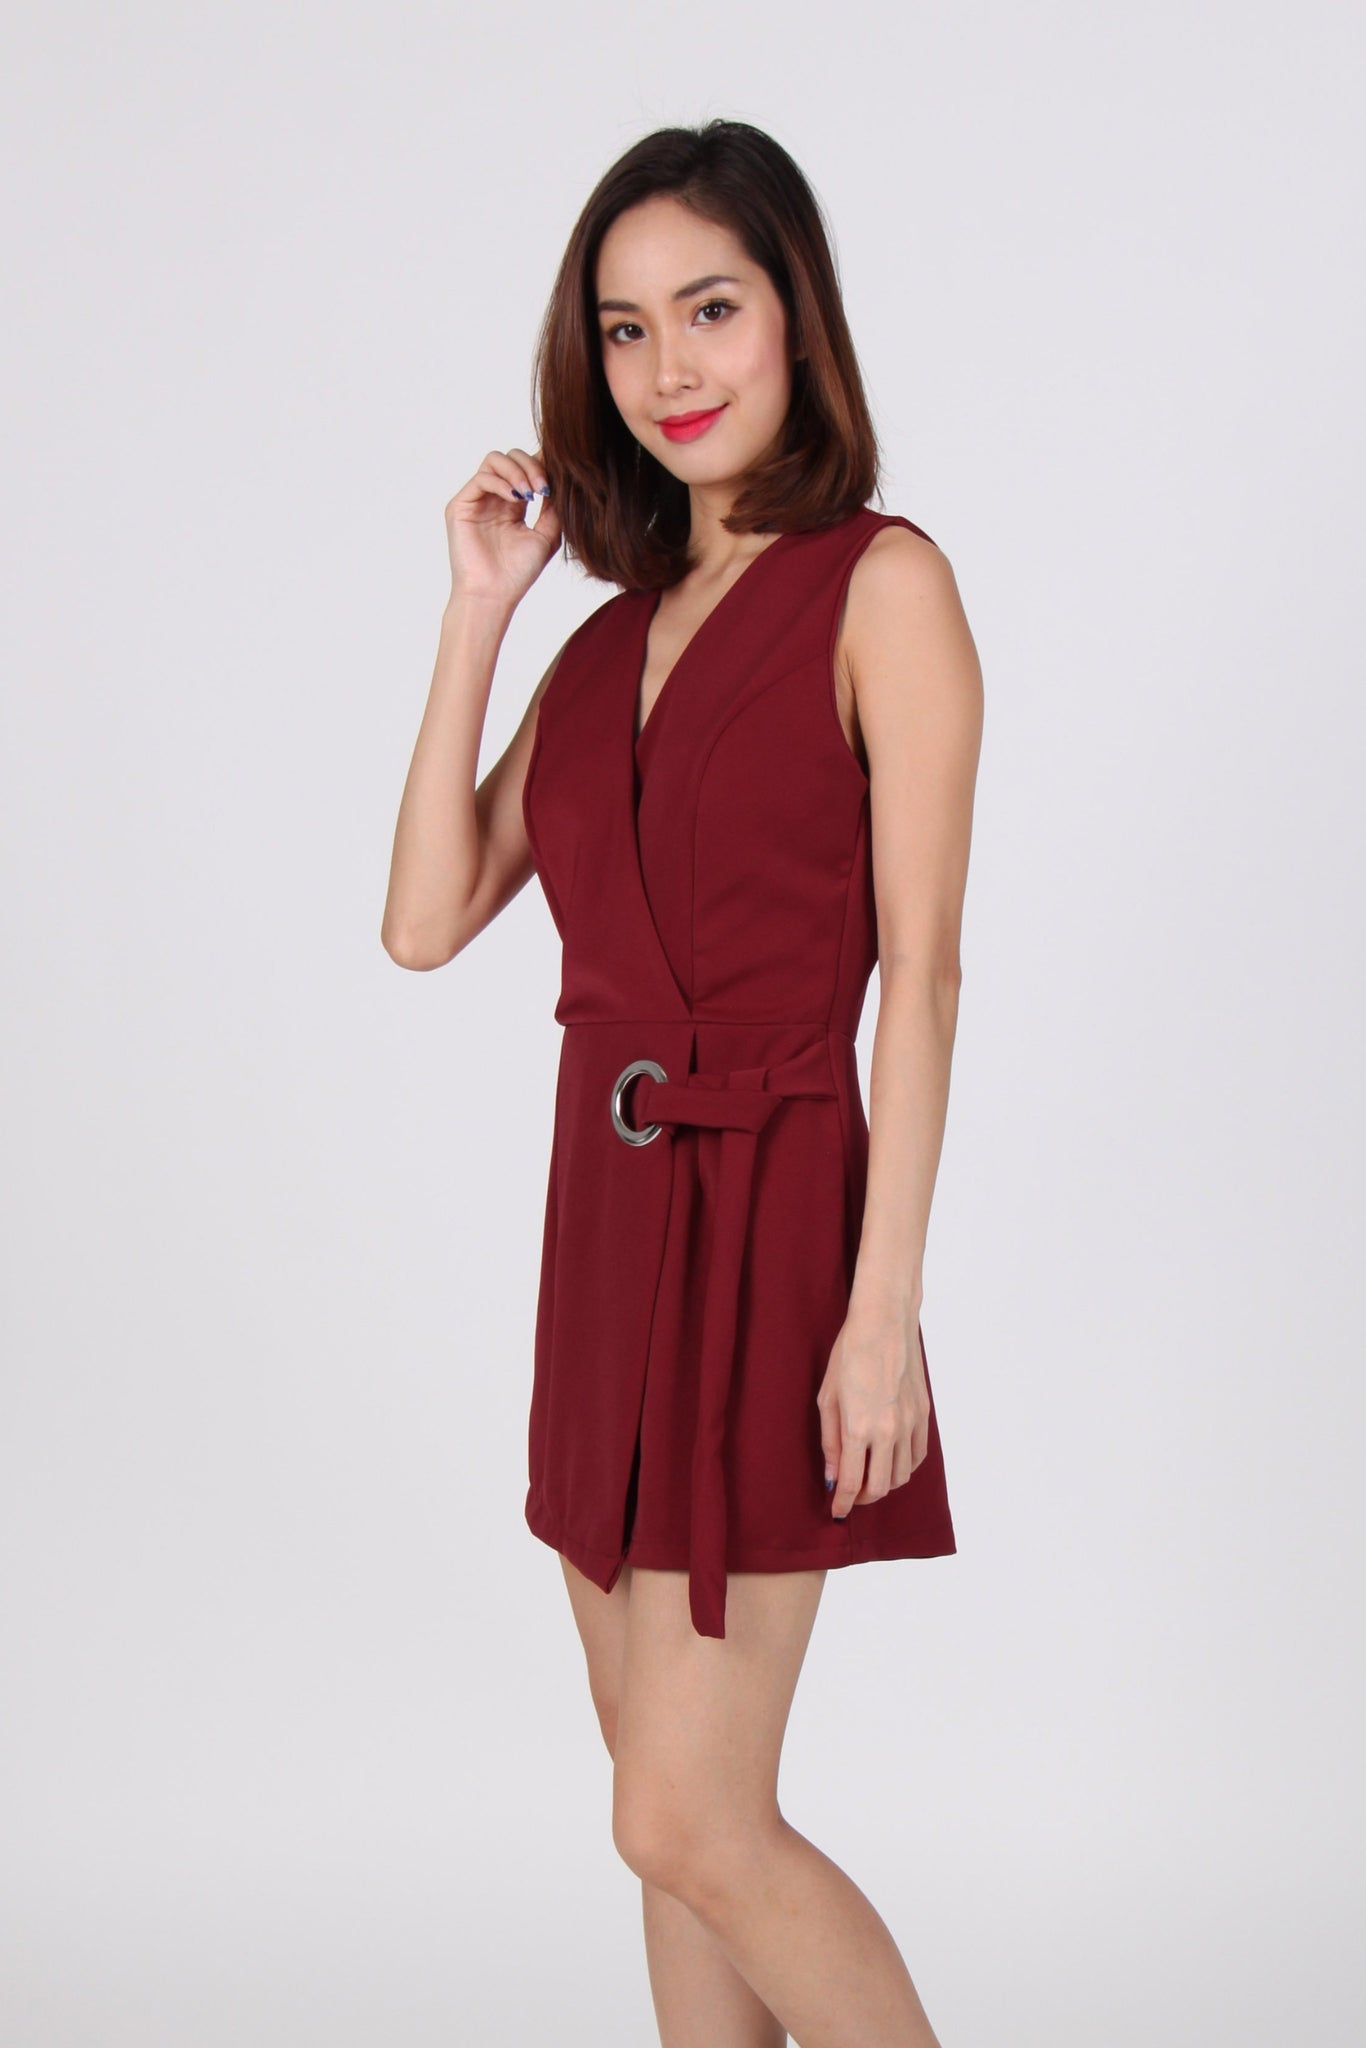 O Ring Overlap V Neck Sleeveless Romper in Maroon